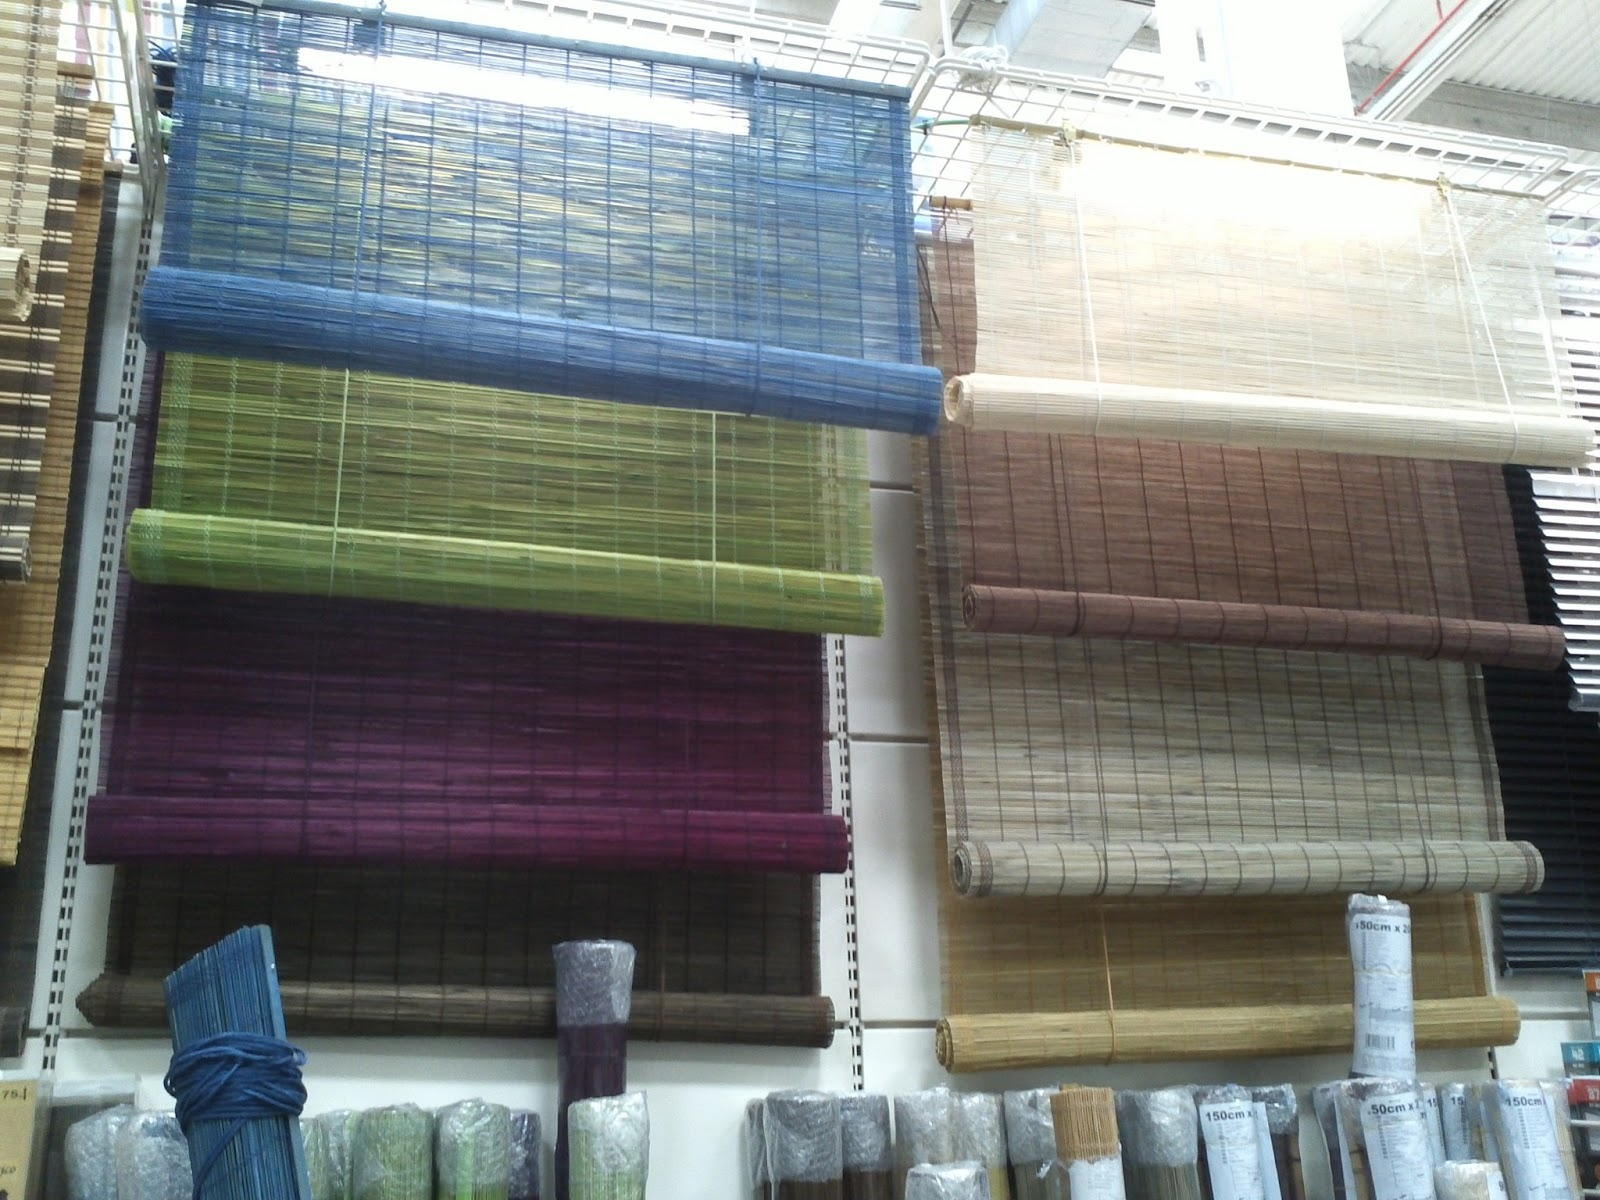 Decandyou ideas de decoraci n y mobiliario para el hogar for Estores bambu ikea